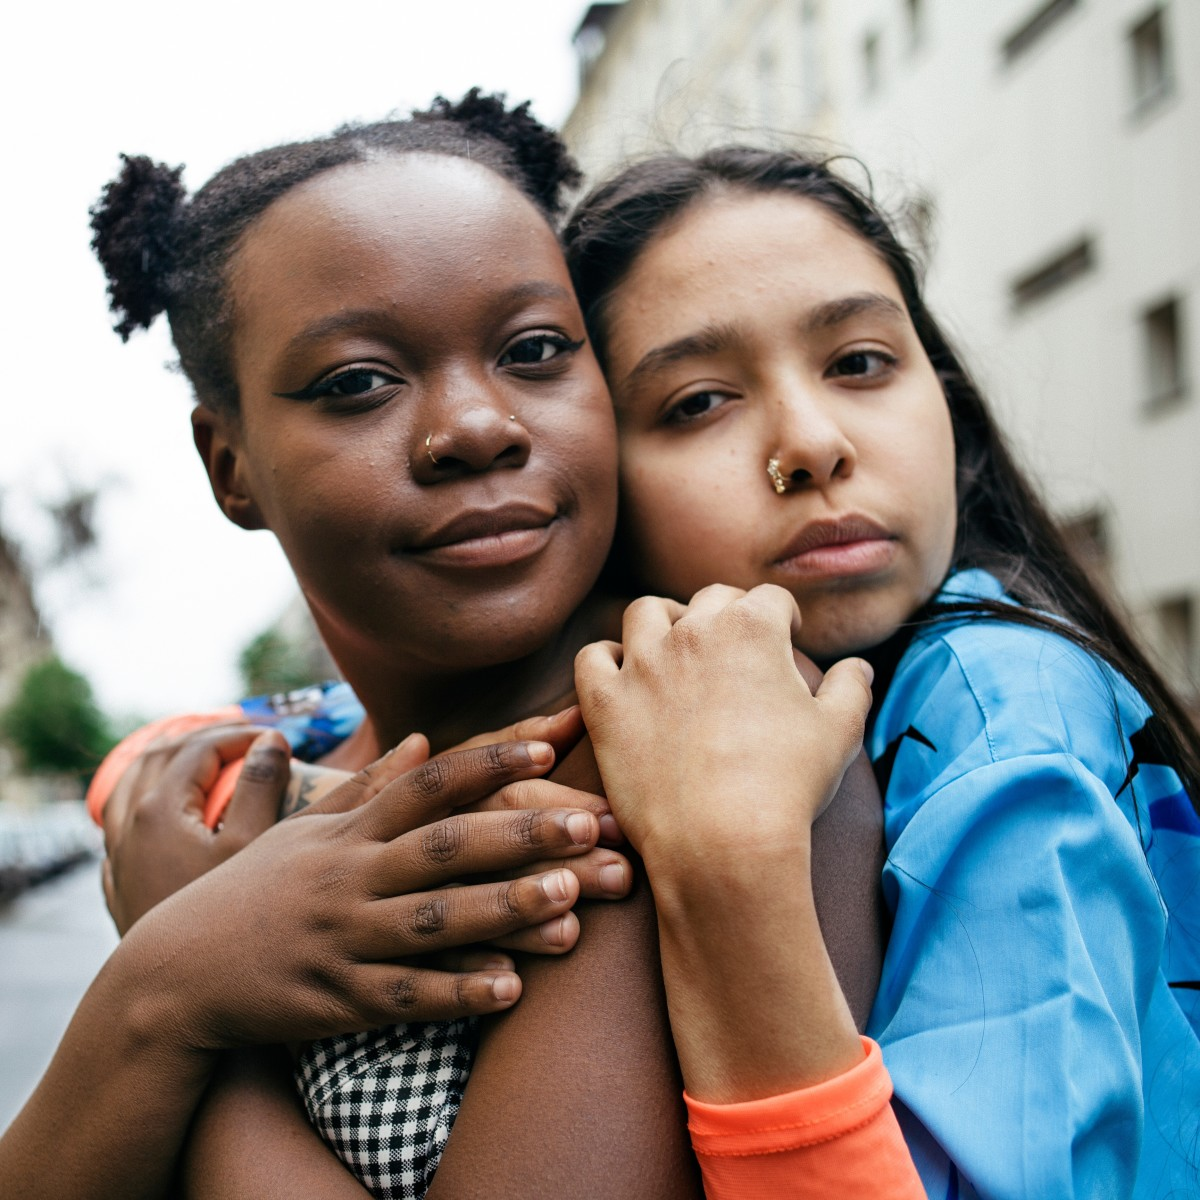 Naked girls different ethnicity Confront Colorism Guide Dosomething Org